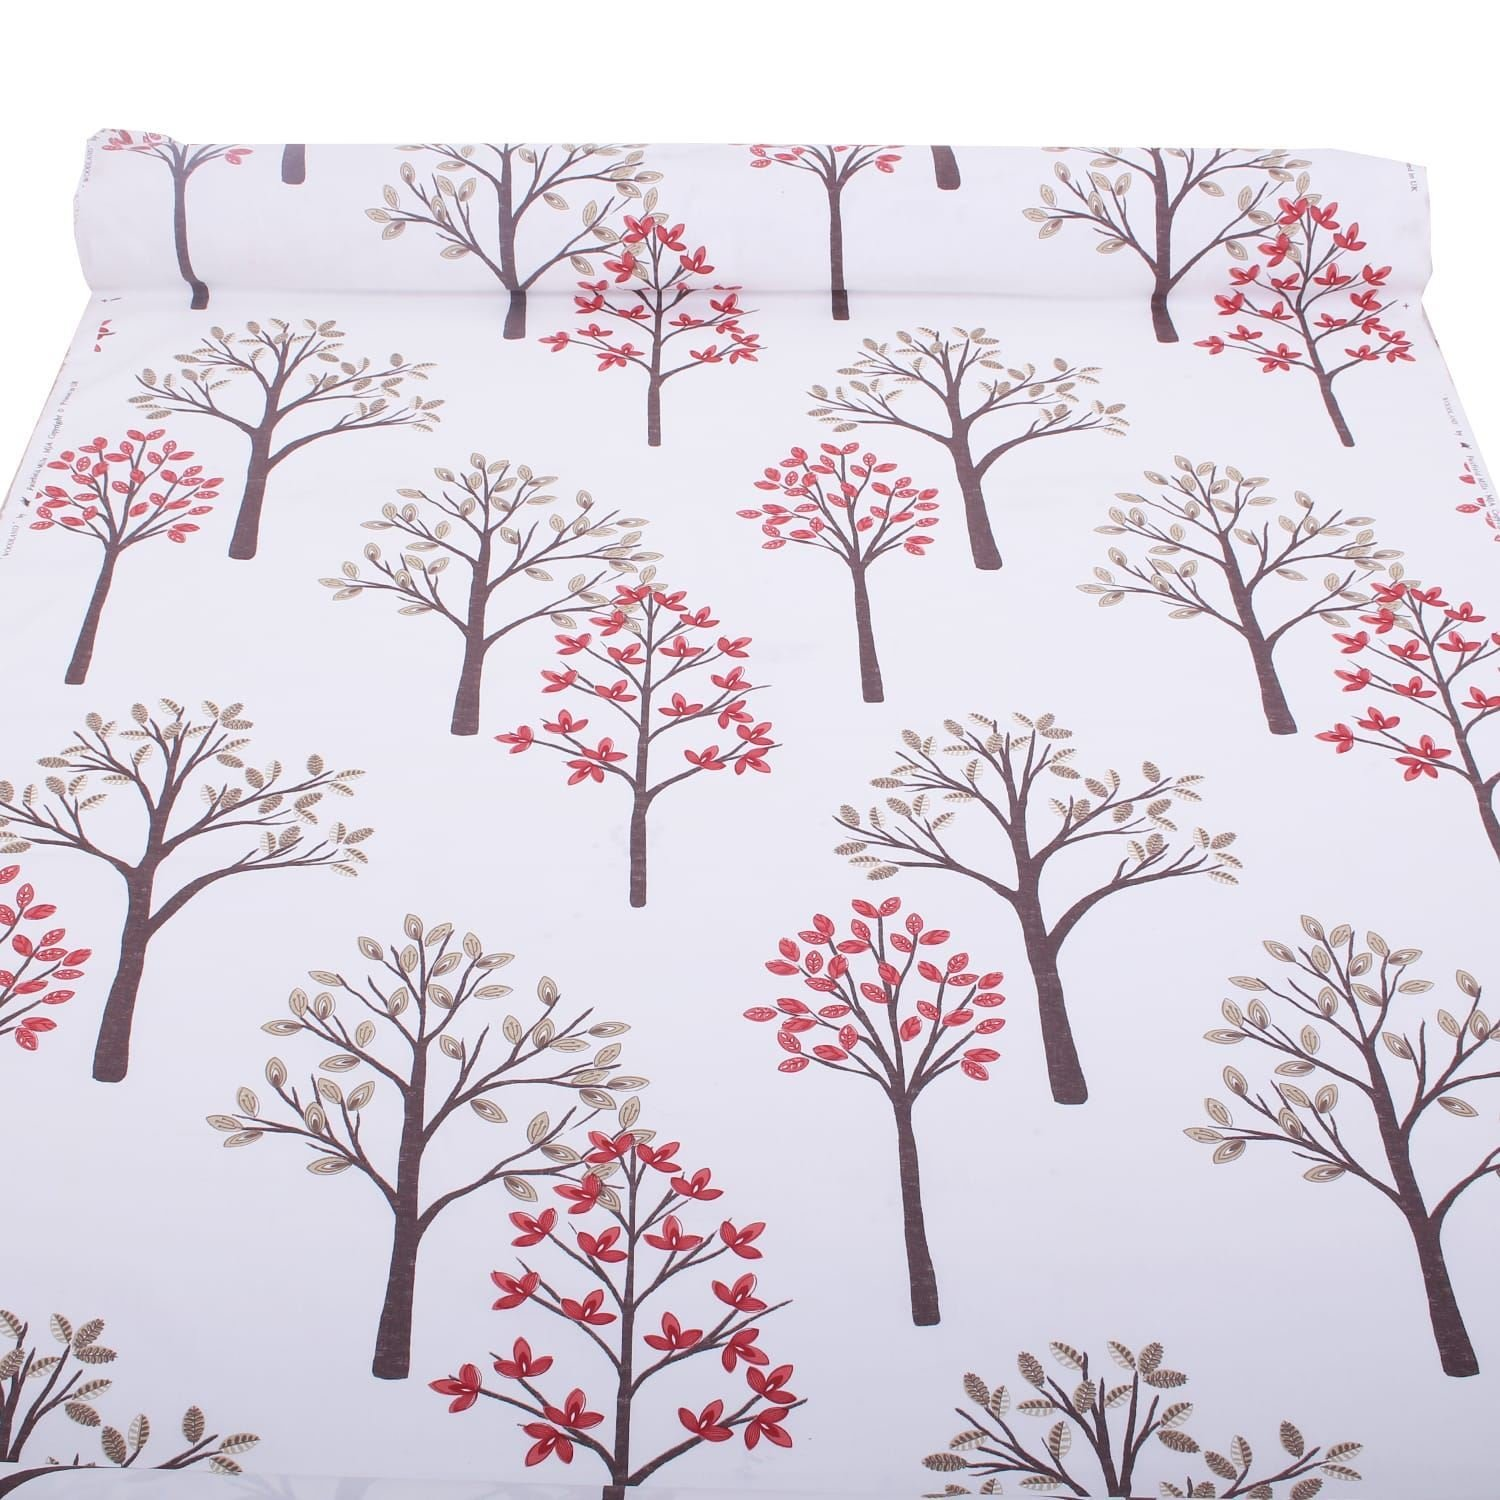 100% Cotton Premium Fabric Woodland Range Contemporary Floral Designs For Curtains Upholstery In A Range Of Contemporary Luxury Colours Sold By The Metre I Want Fabric